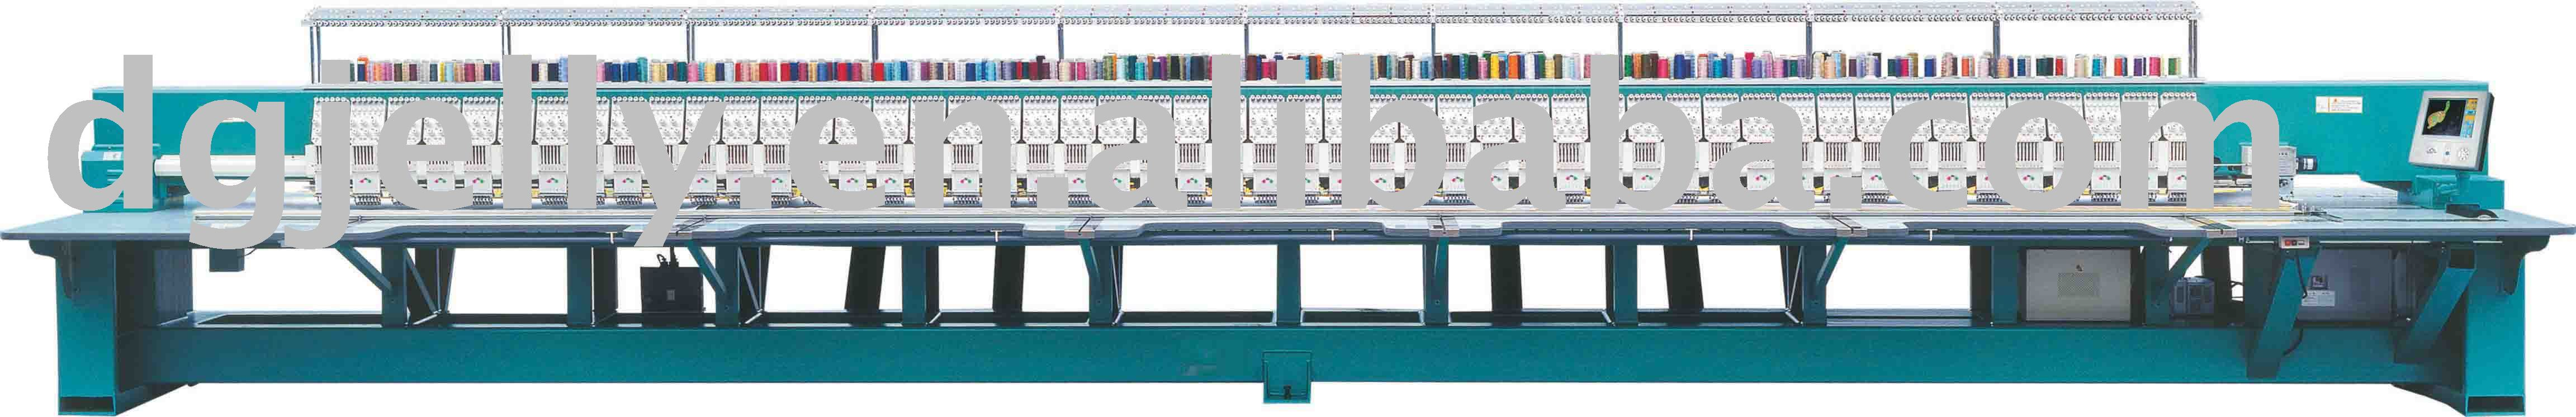 Comupterized Multi-head Embroidery machine